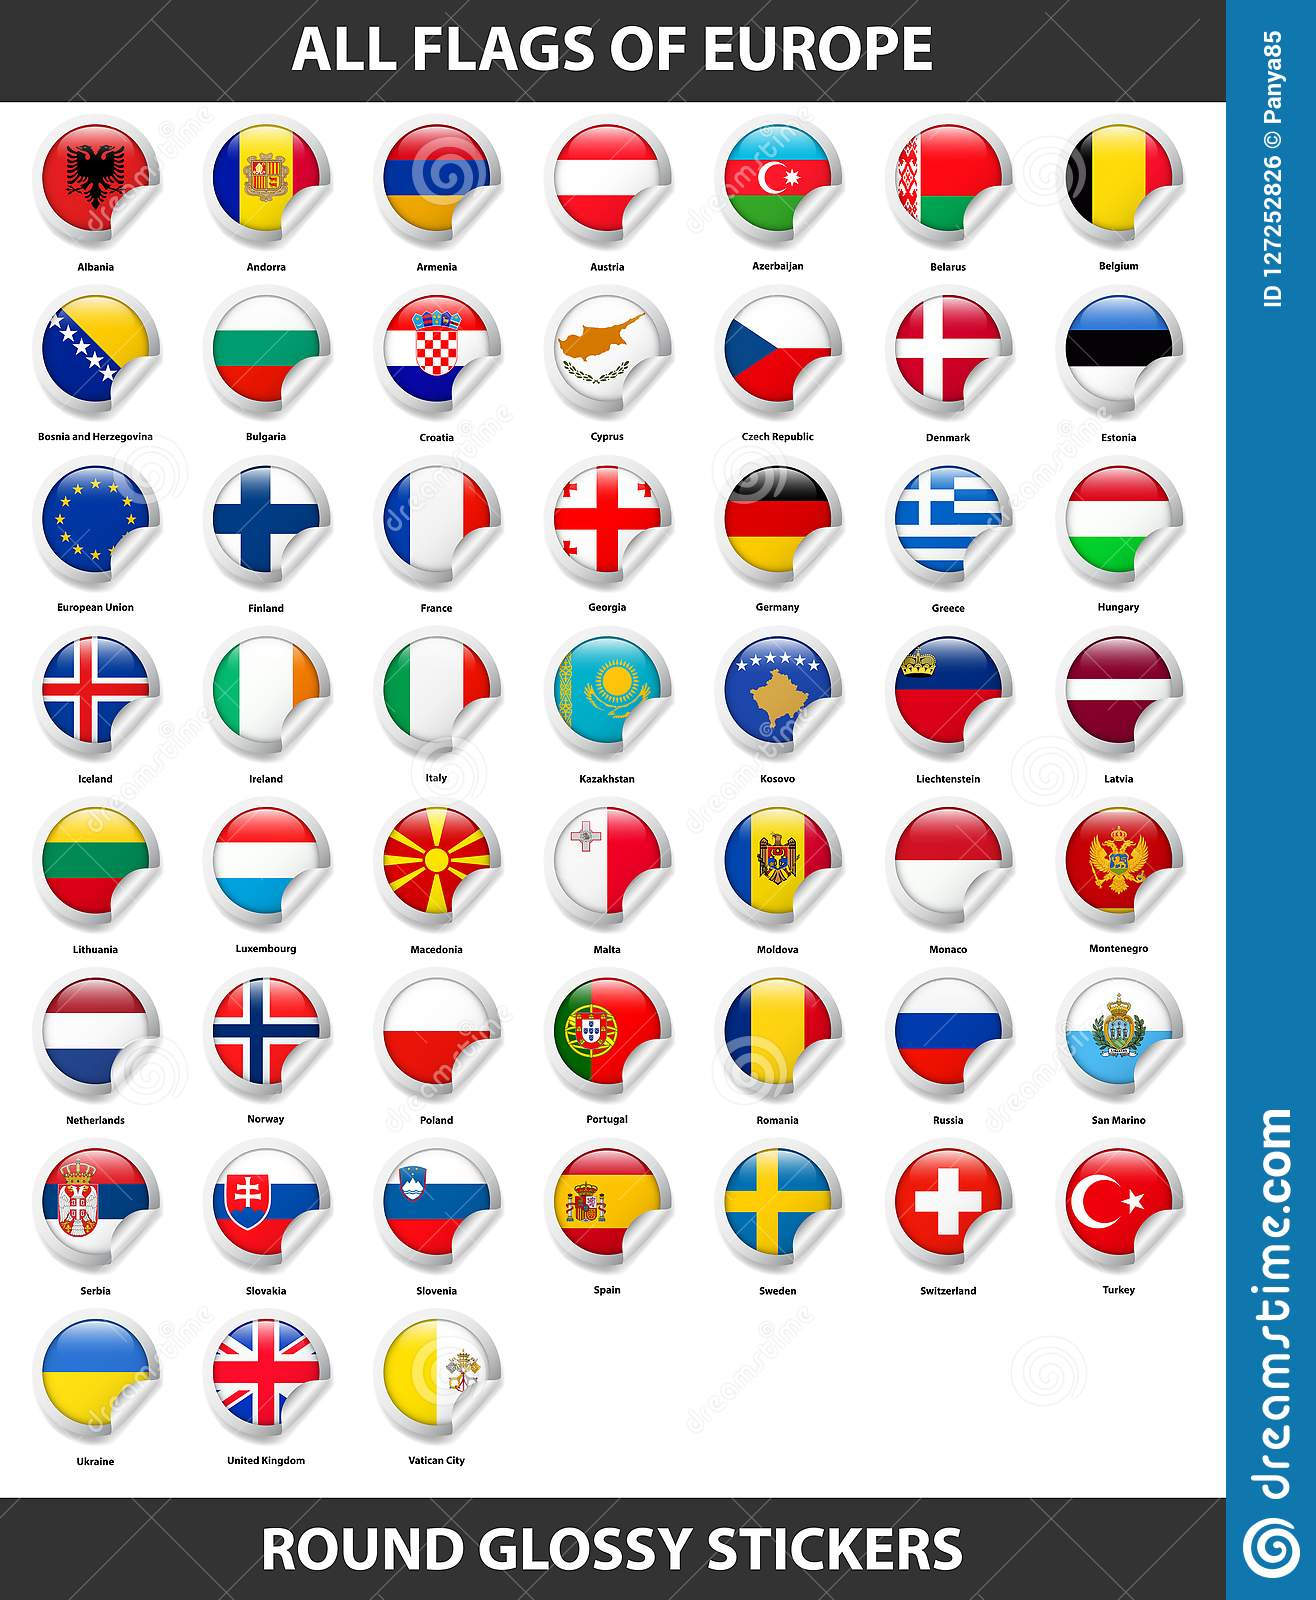 Flags Of All Countries Of Europe. Round Glossy Stickers intérieur Tout Les Pays D Europe